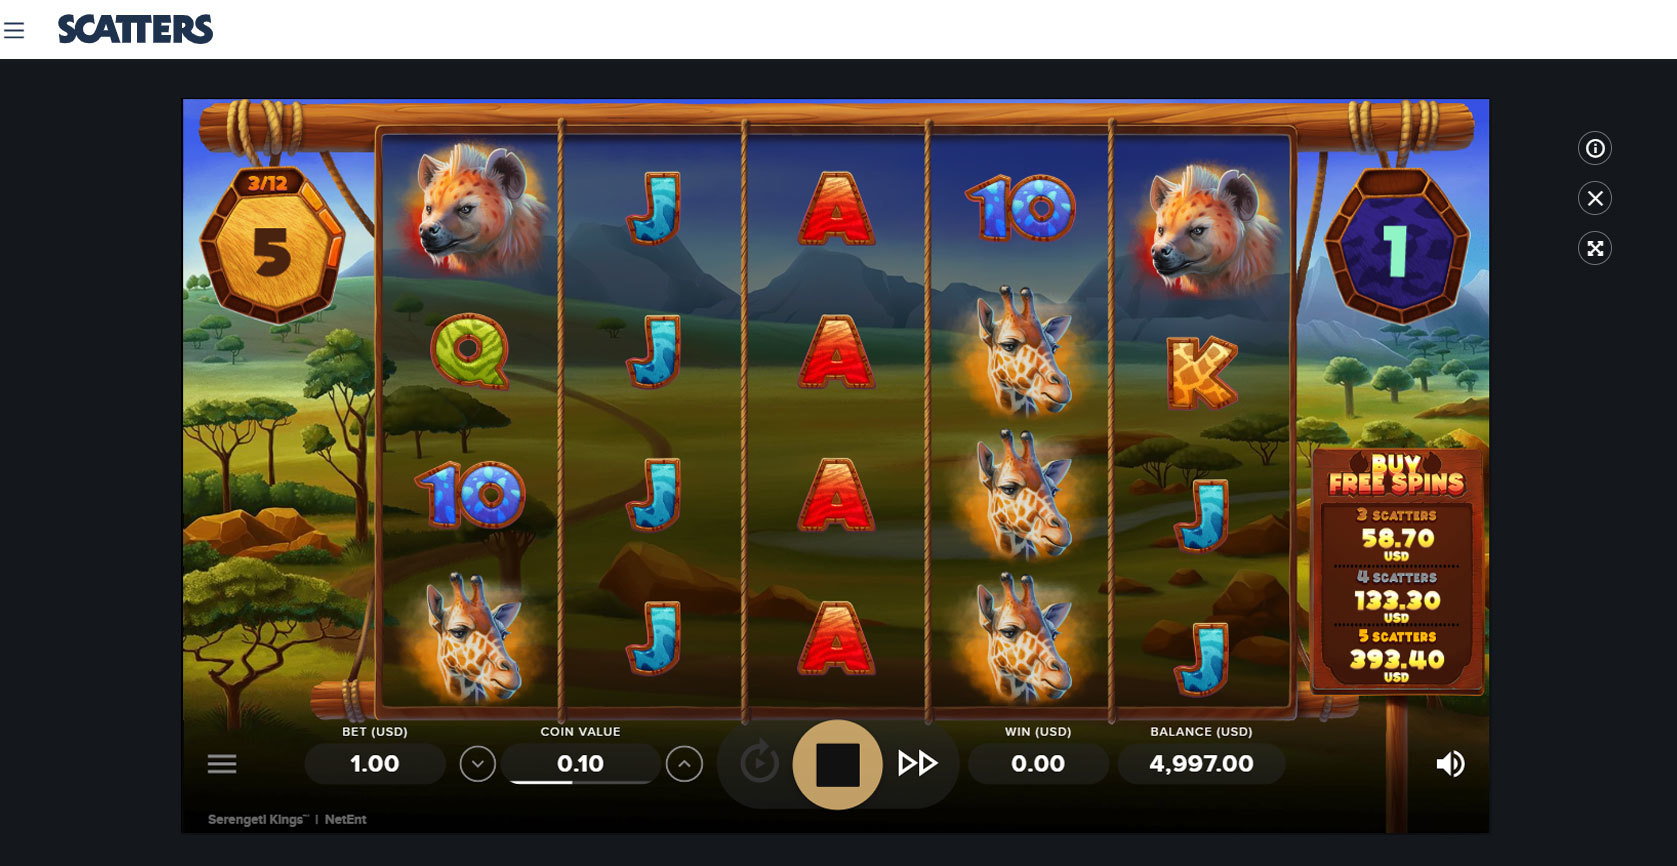 Play Serengeti Kings Slot by Netent for Free or Real Money at Scatters